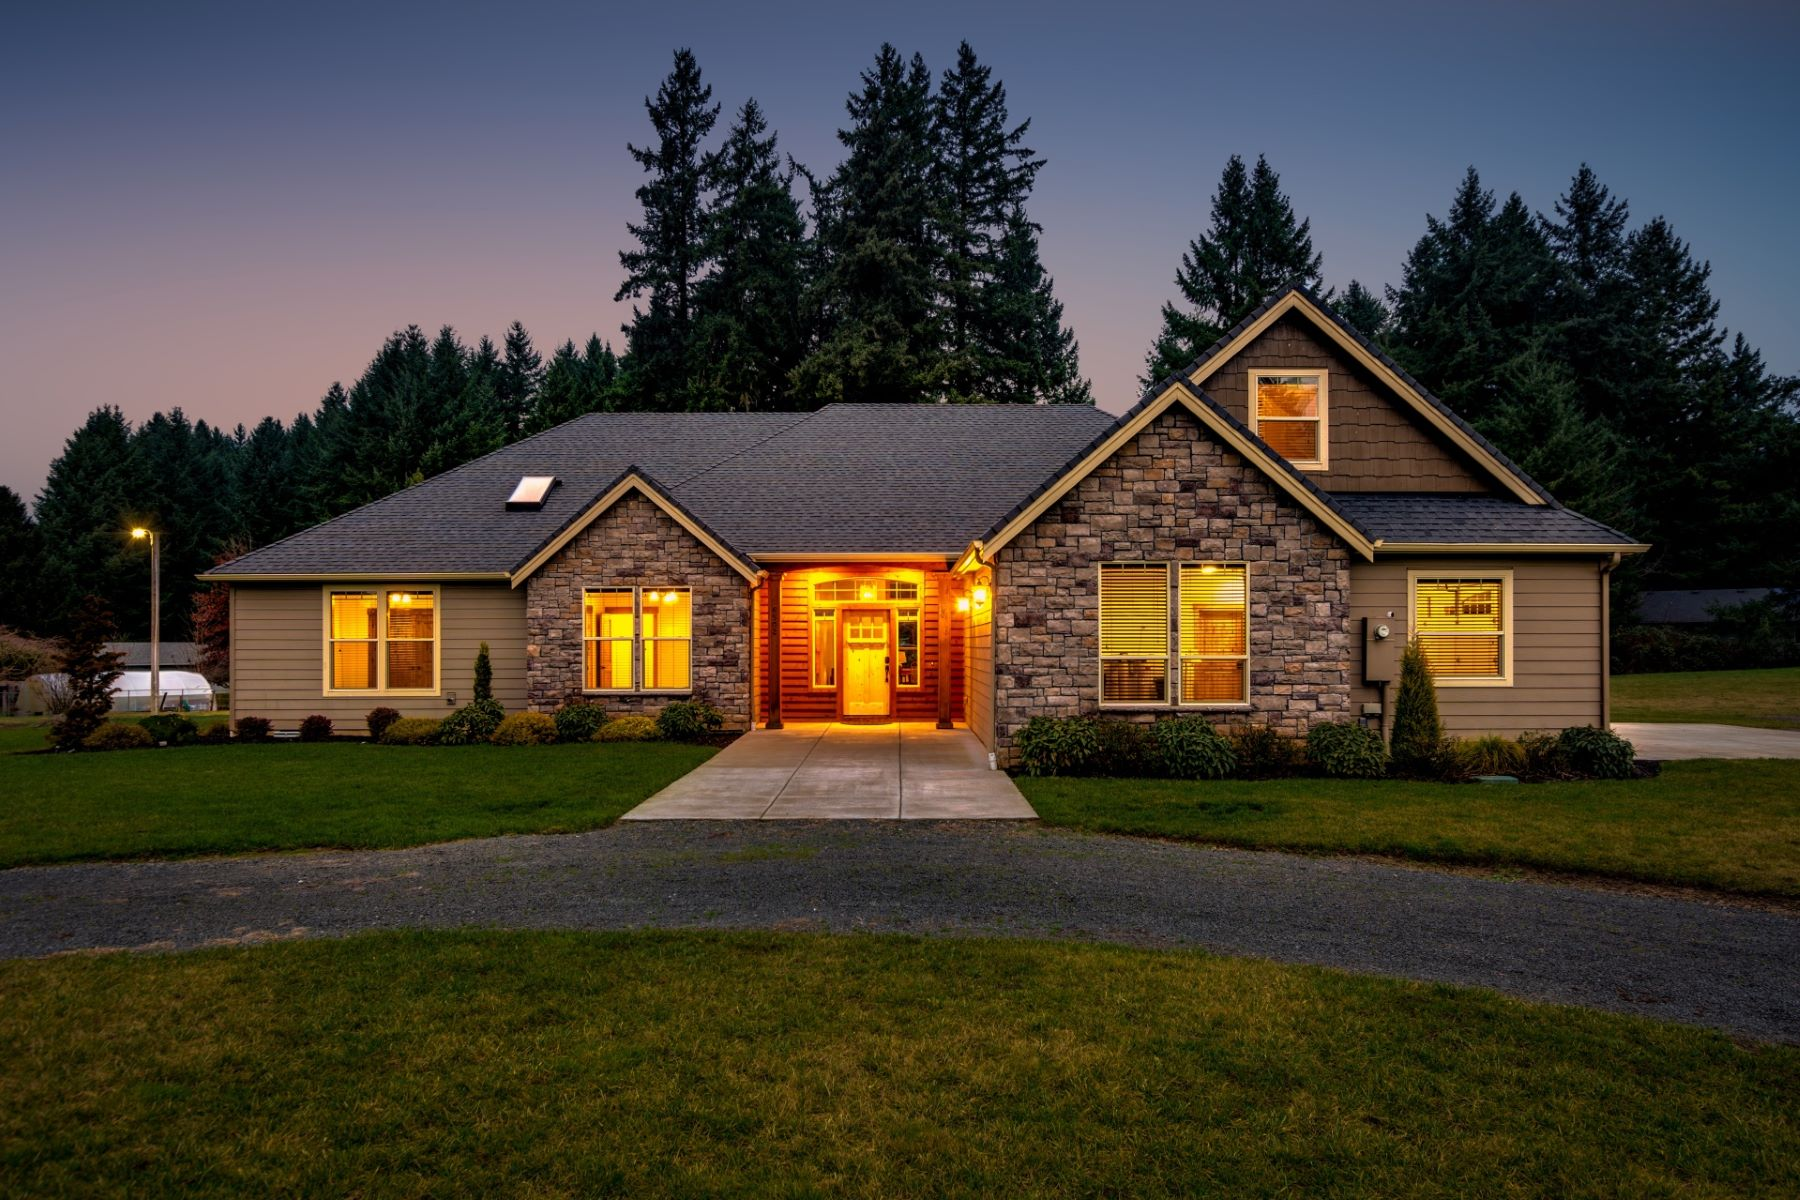 Other Residential Homes 為 出售 在 6502 NE 124TH ST Vancouver, WA 98686 Vancouver, 華盛頓州 98686 美國